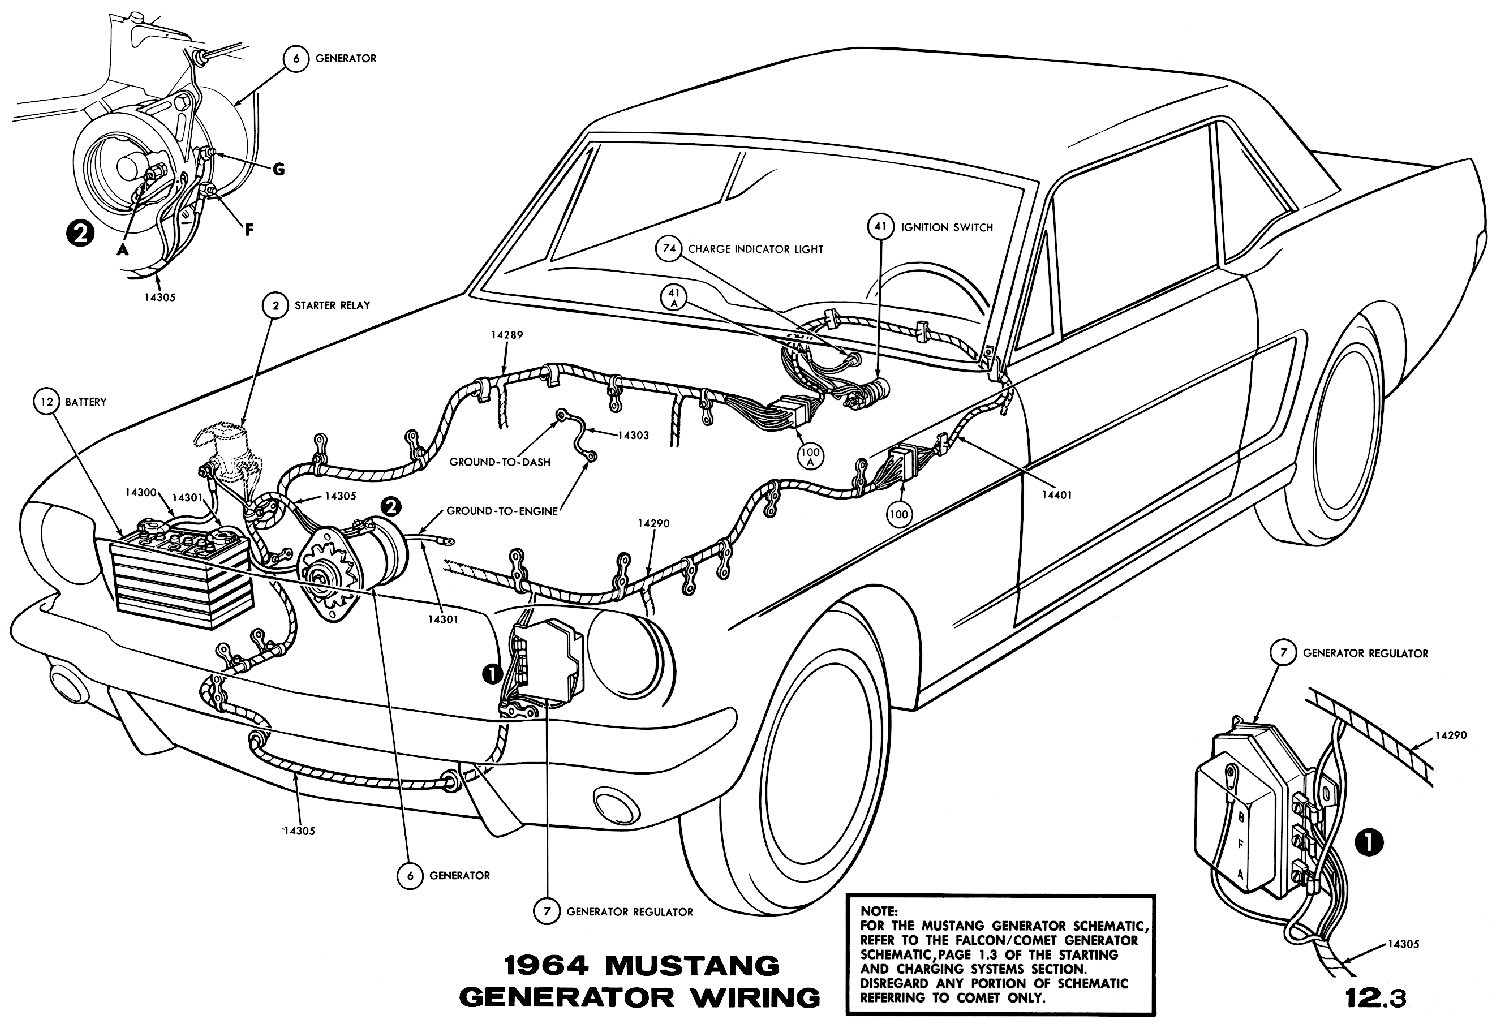 1965 Mustang Courtesy Light Wiring Diagram, 1965, Free